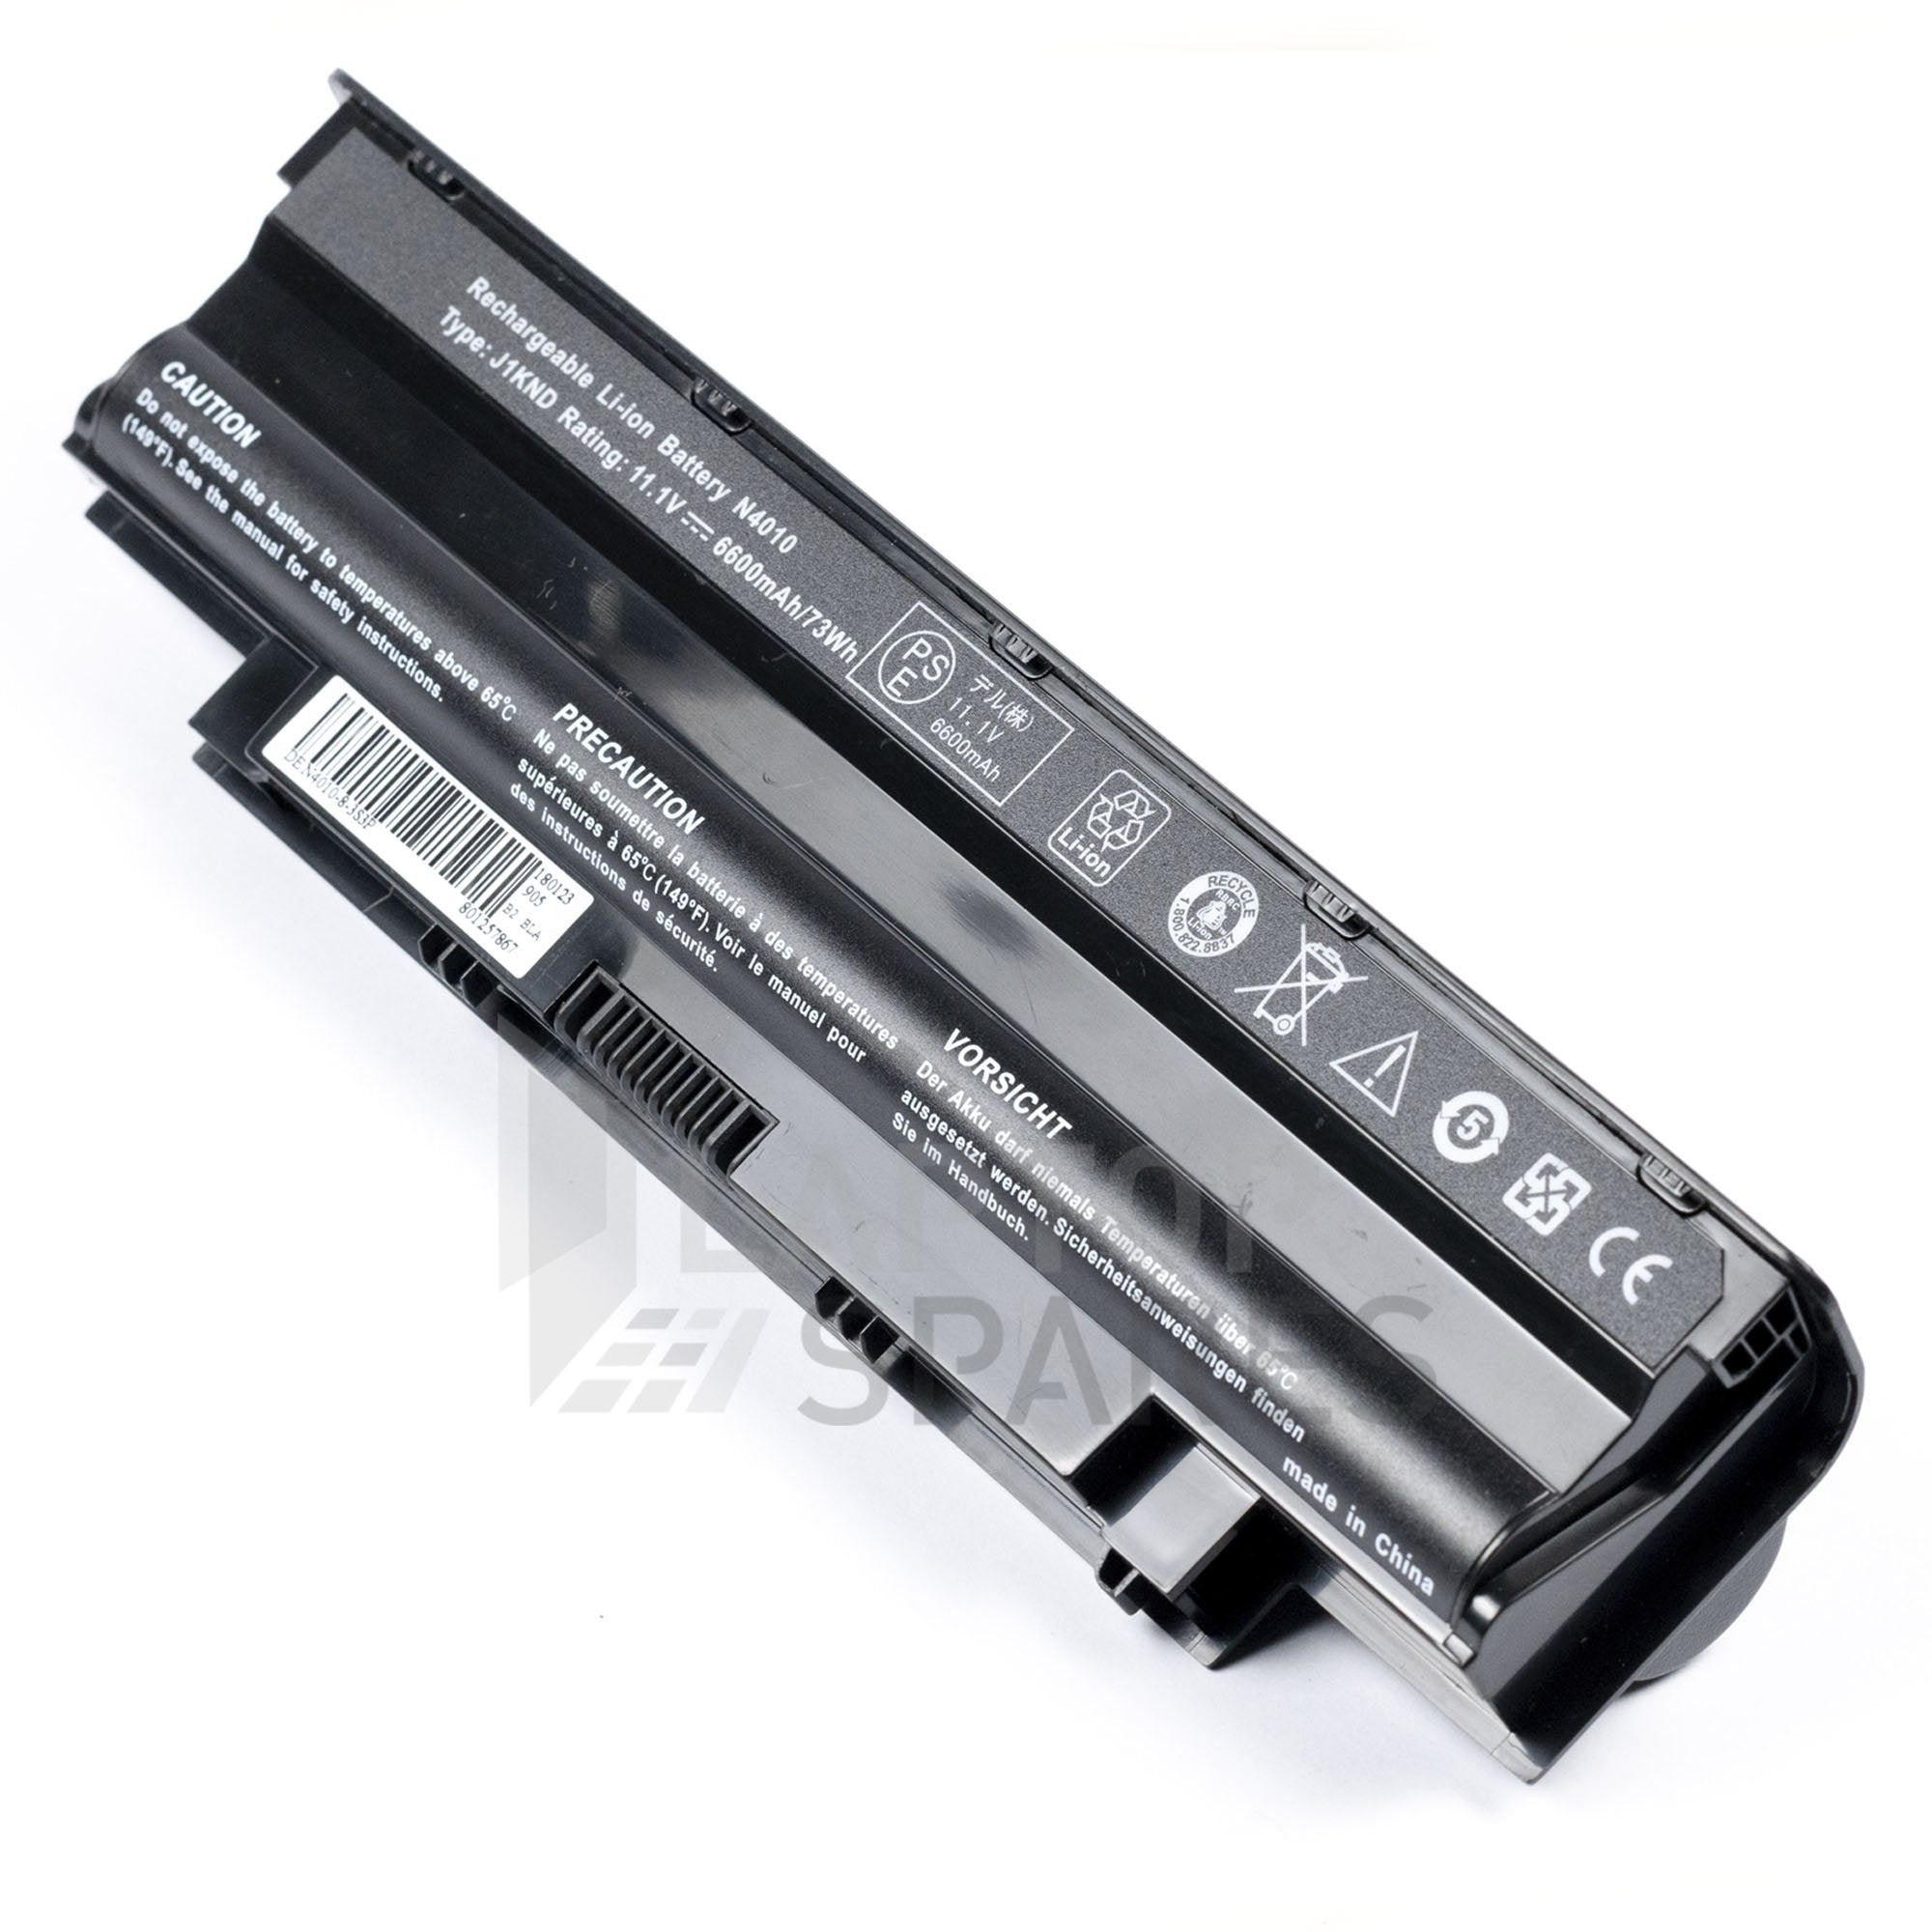 Dell Inspiron 13R 3010-D430 6600mAh 9 Cell Battery